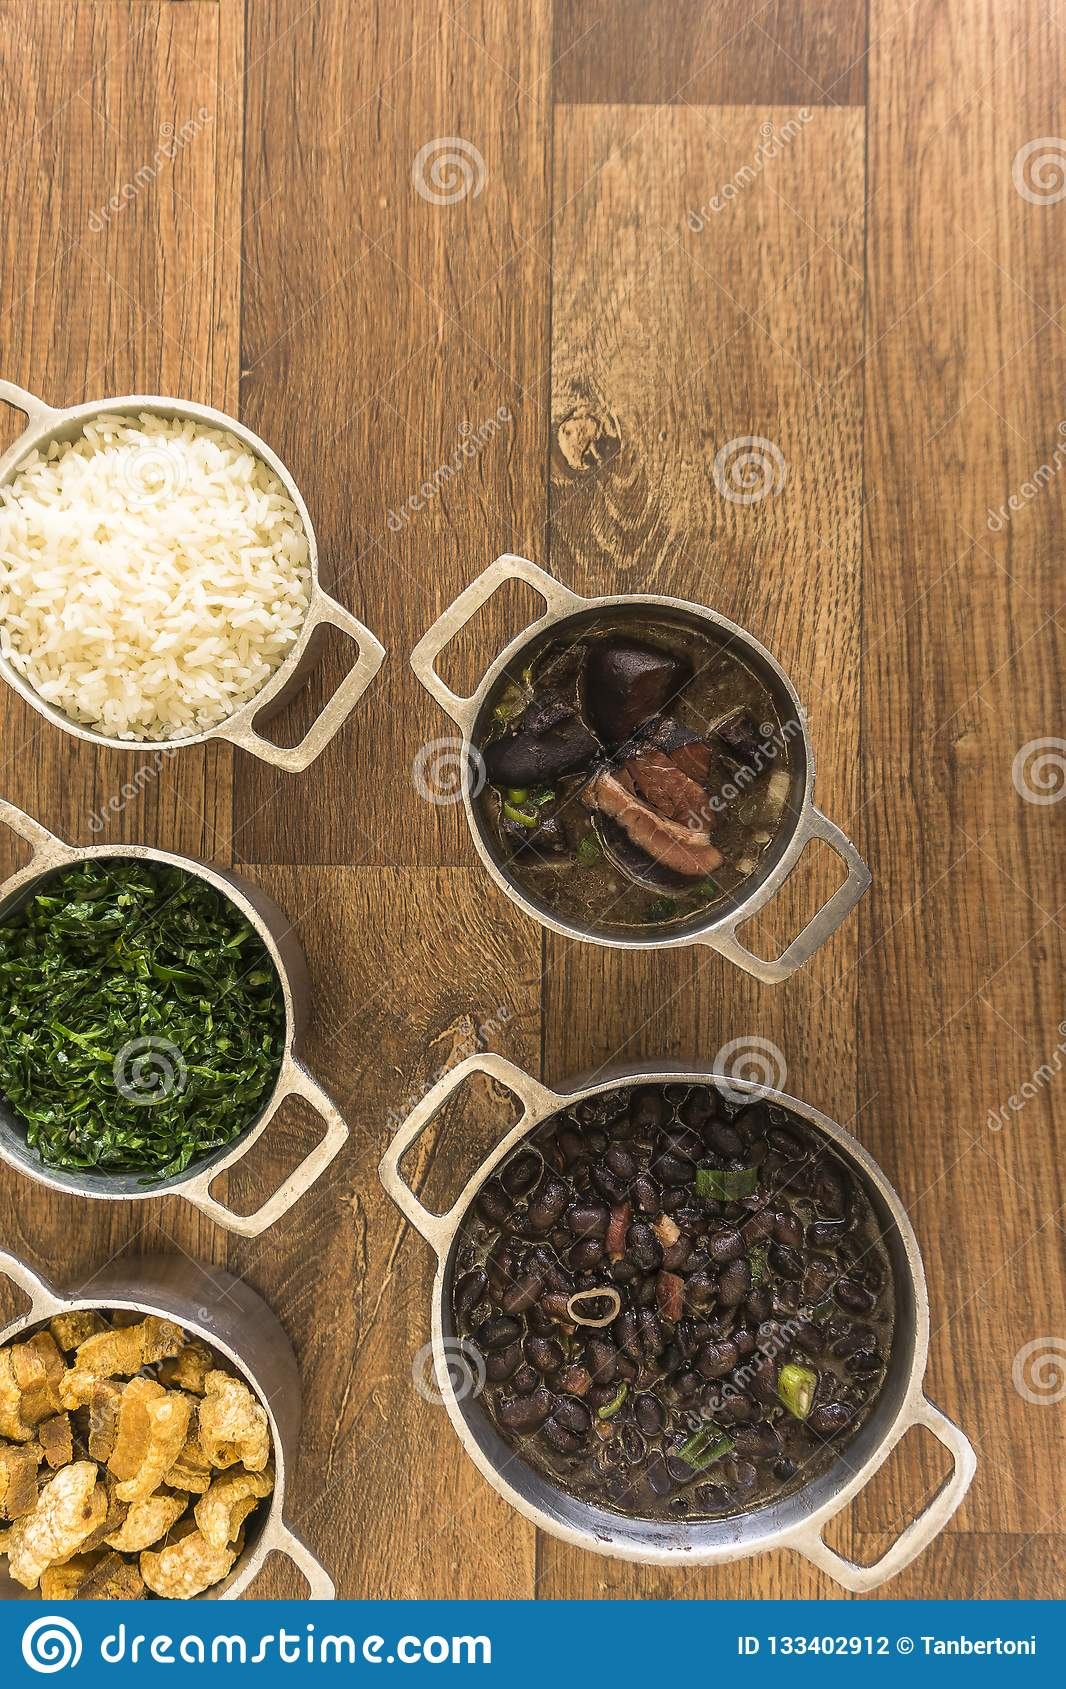 Dishes that are part of the traditional feijoada, typical Brazilian food